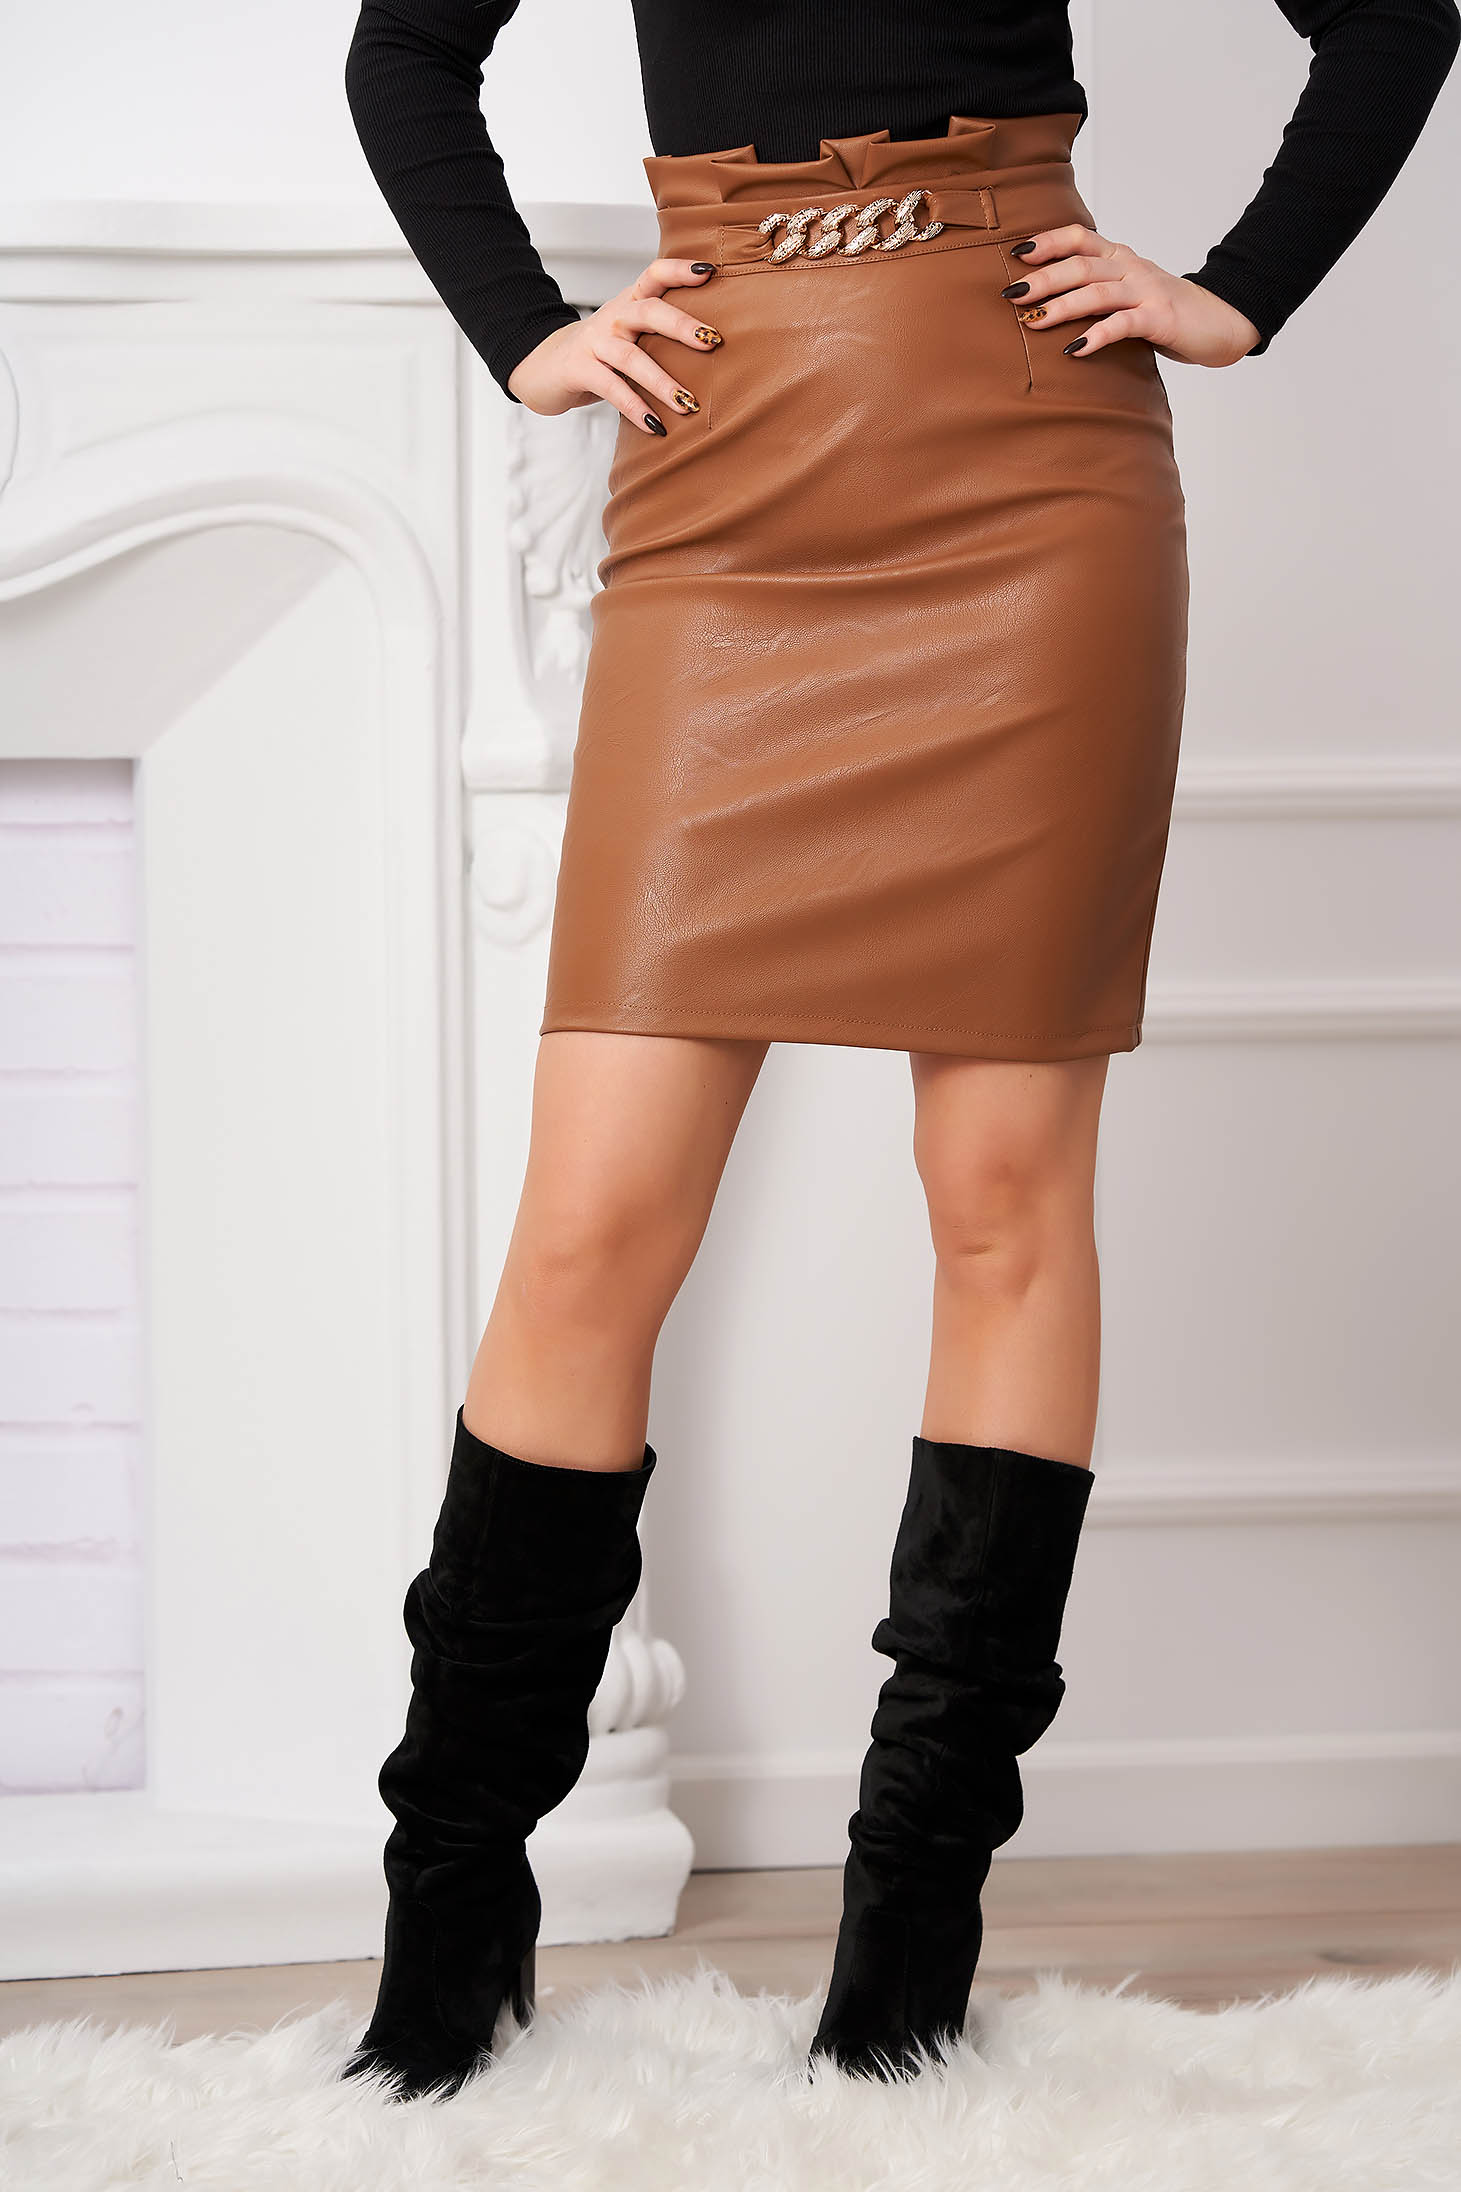 Brown skirt from ecological leather high waisted accessorized with belt metallic chain accessory with tented cut